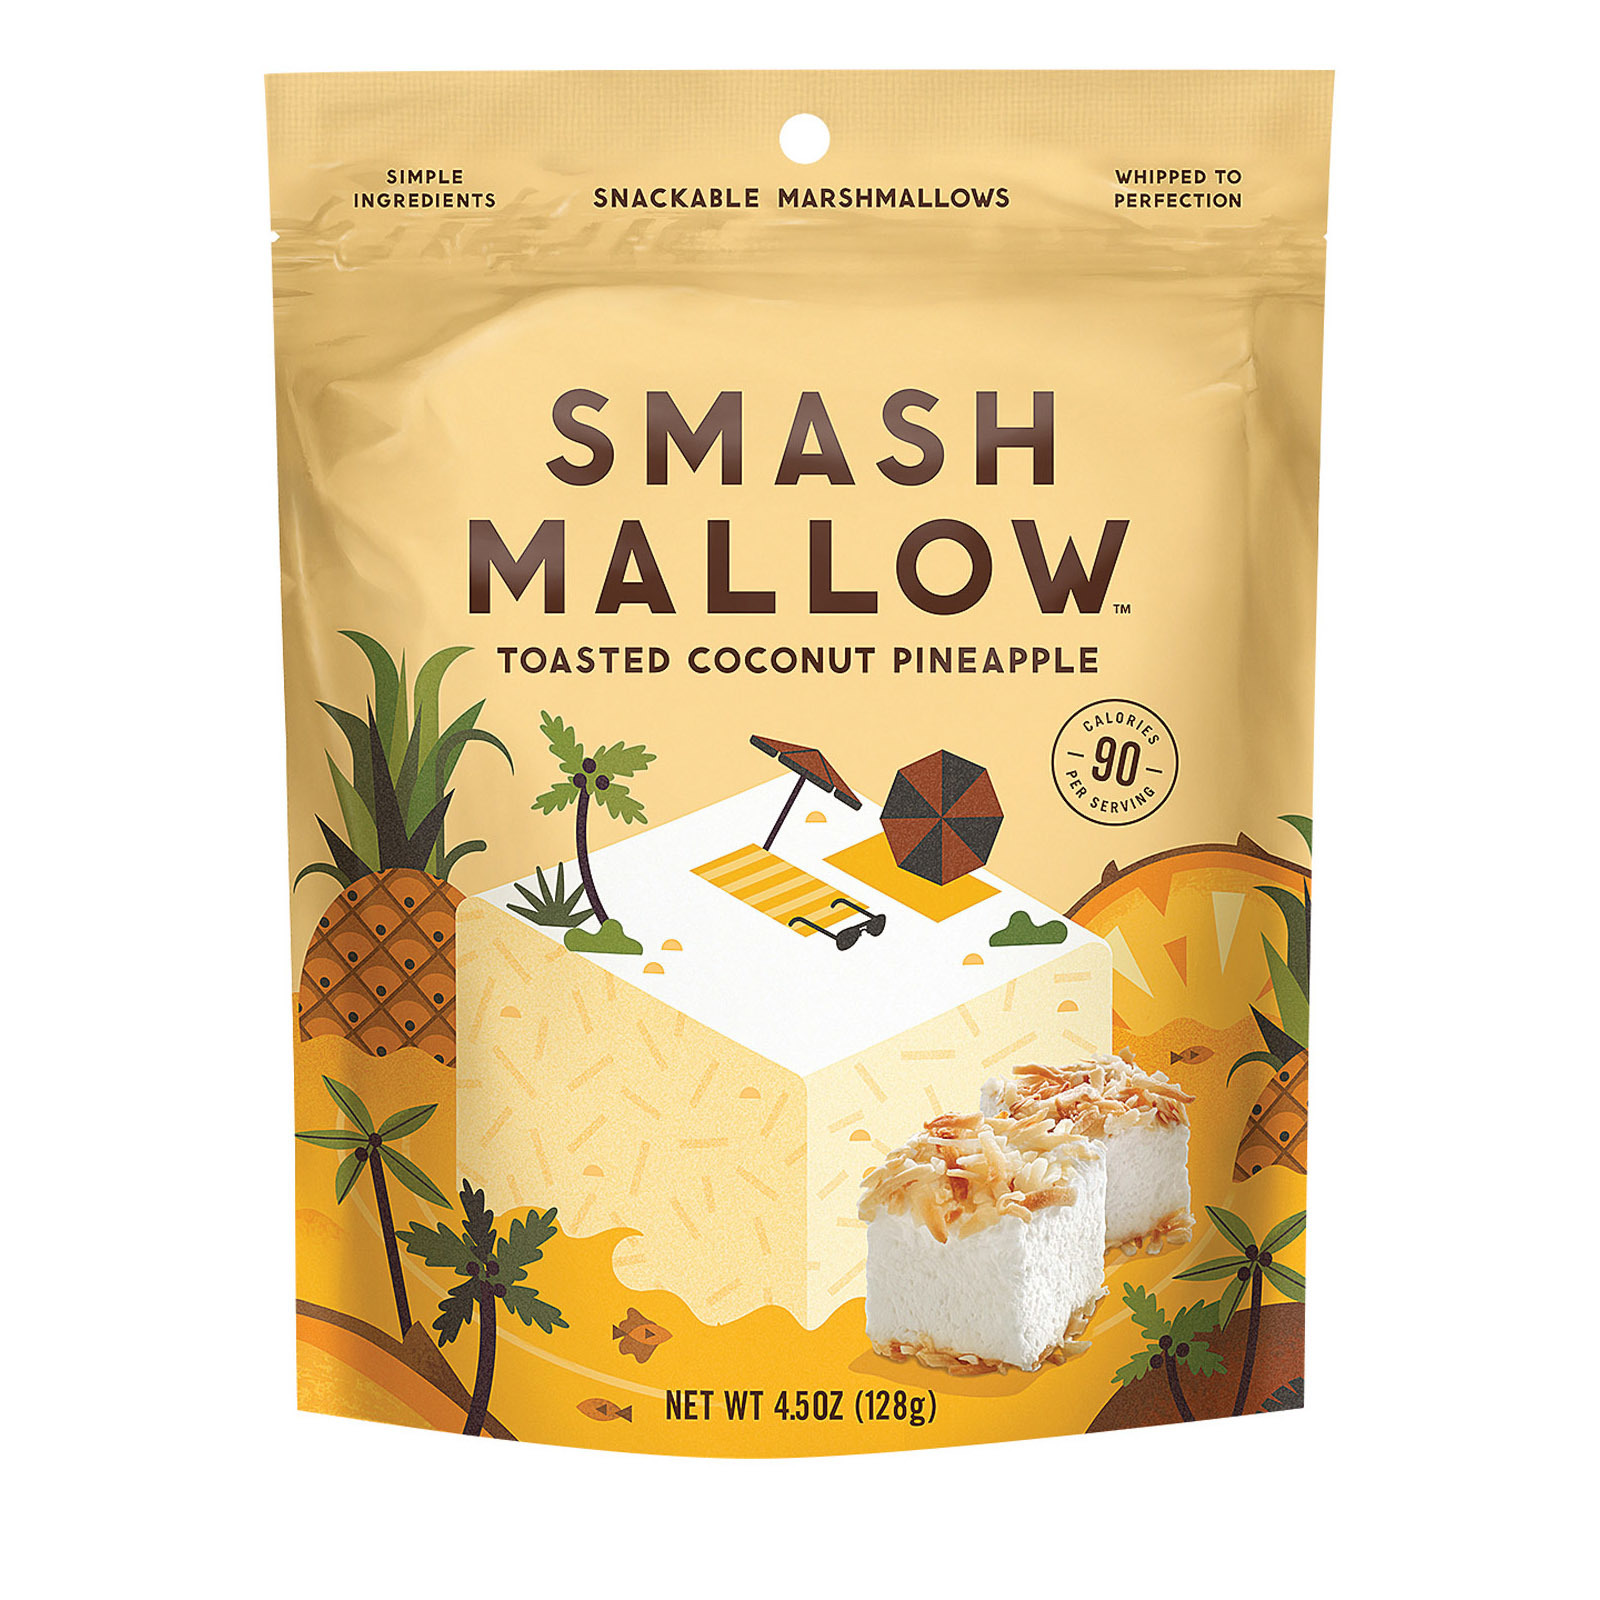 Smashmallow Snackable Marshmallows - Toasted Coconut Pineapple - Case of 12 - 4.5 oz